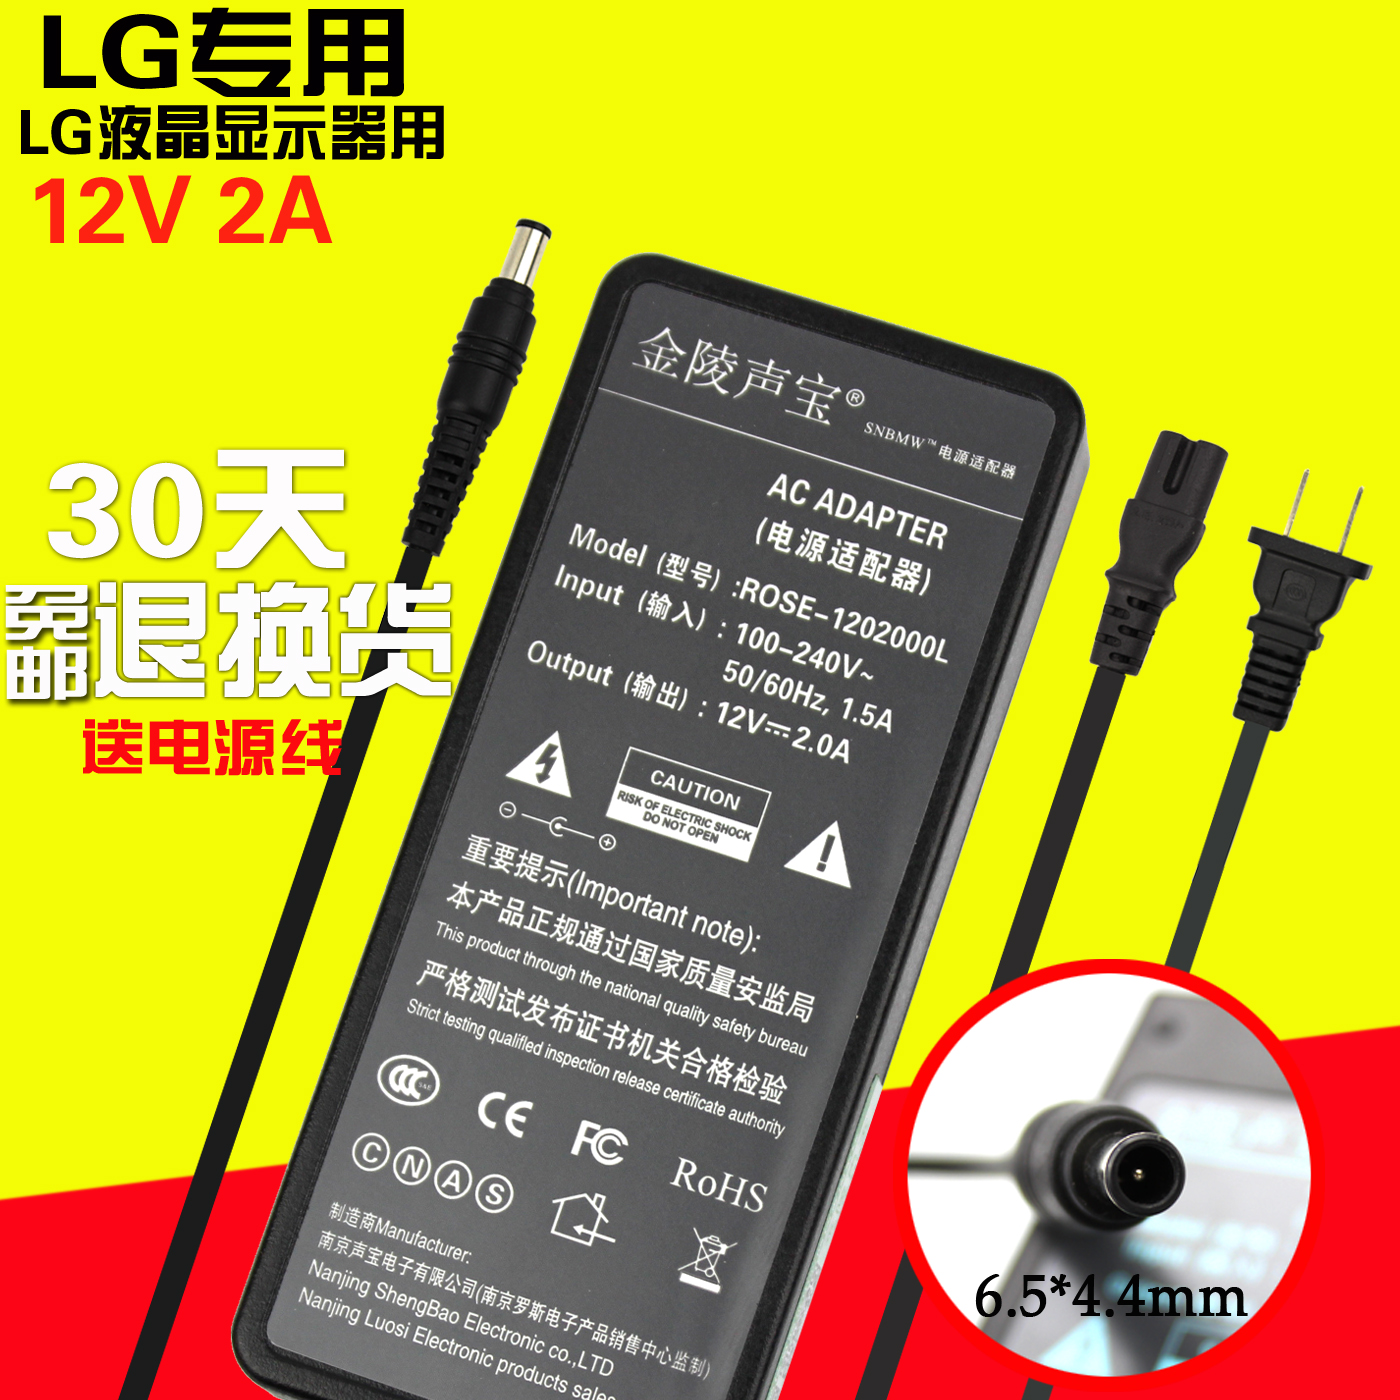 Buy Lg ips224t IPS237L-BN IPS226VX monitor power adapter charger 19